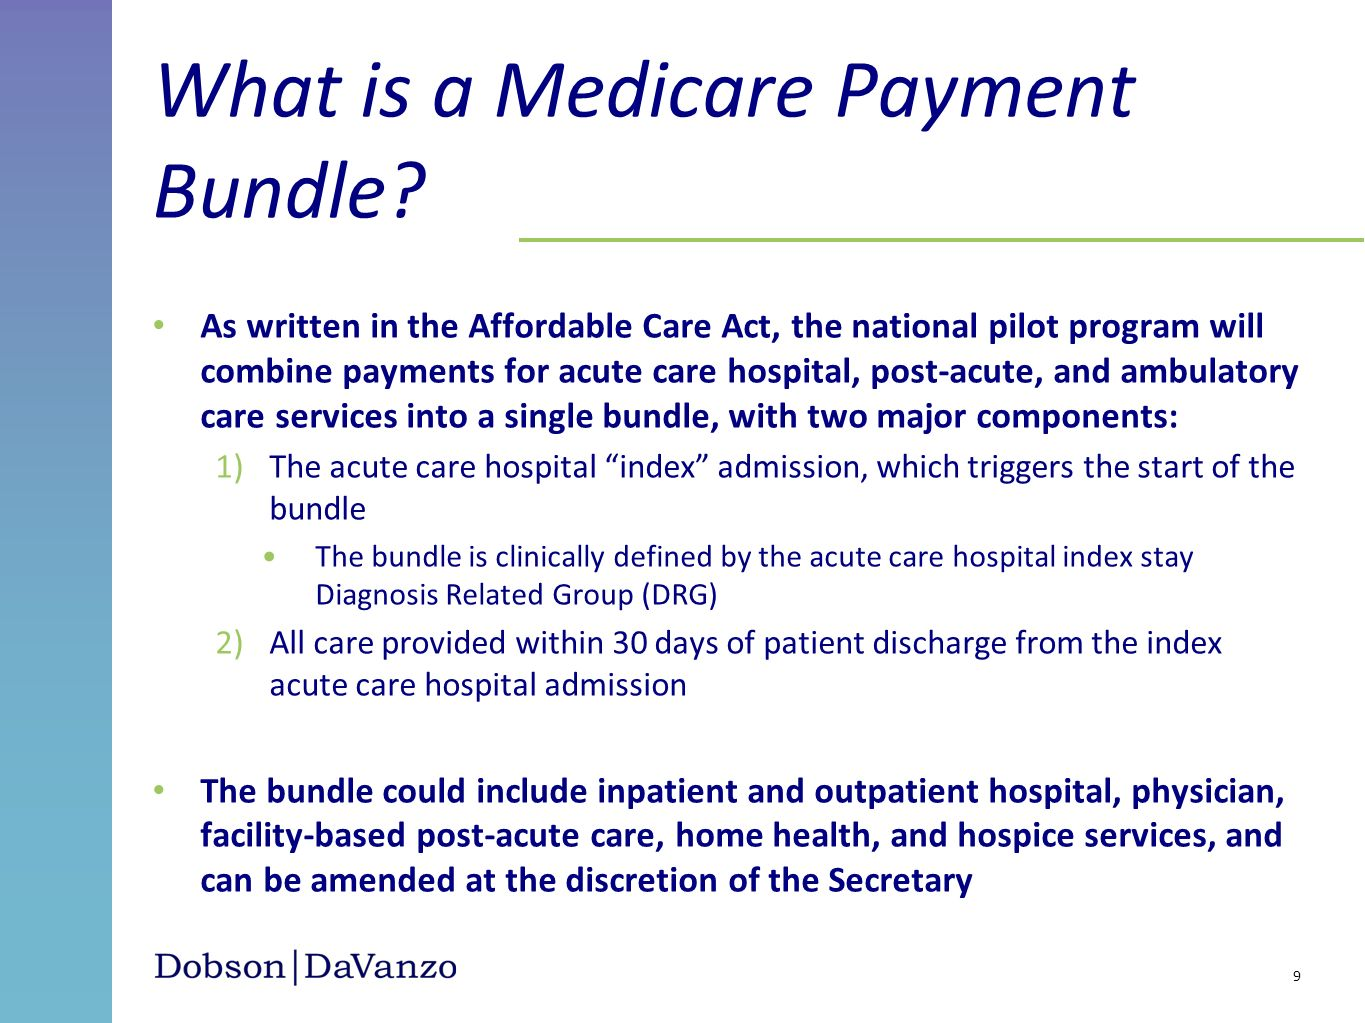 What is a Medicare Payment Bundle